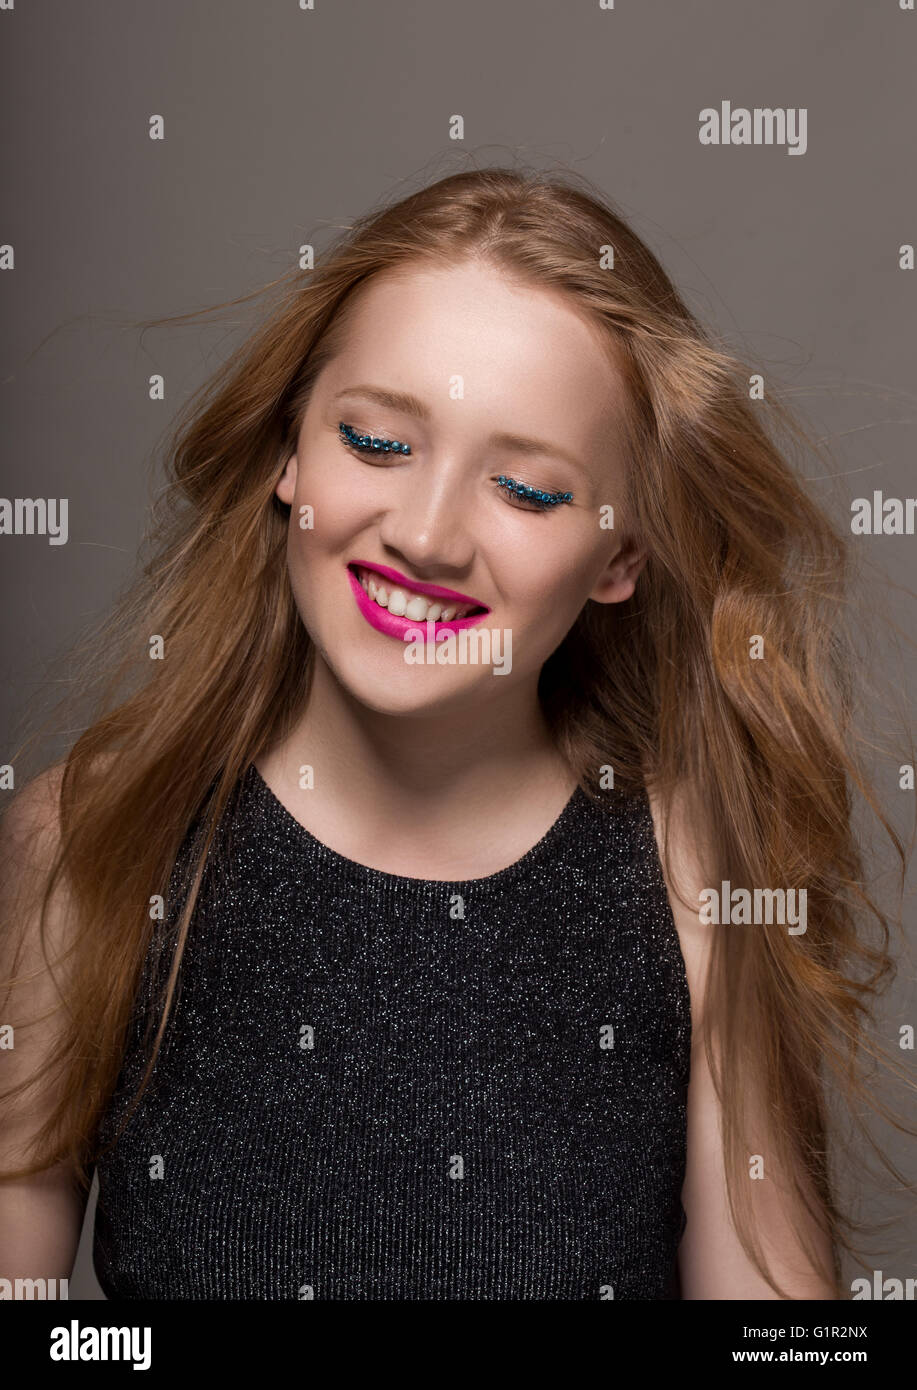 Portrait of a young woman in studio with glittery makeup smiling - Stock Image